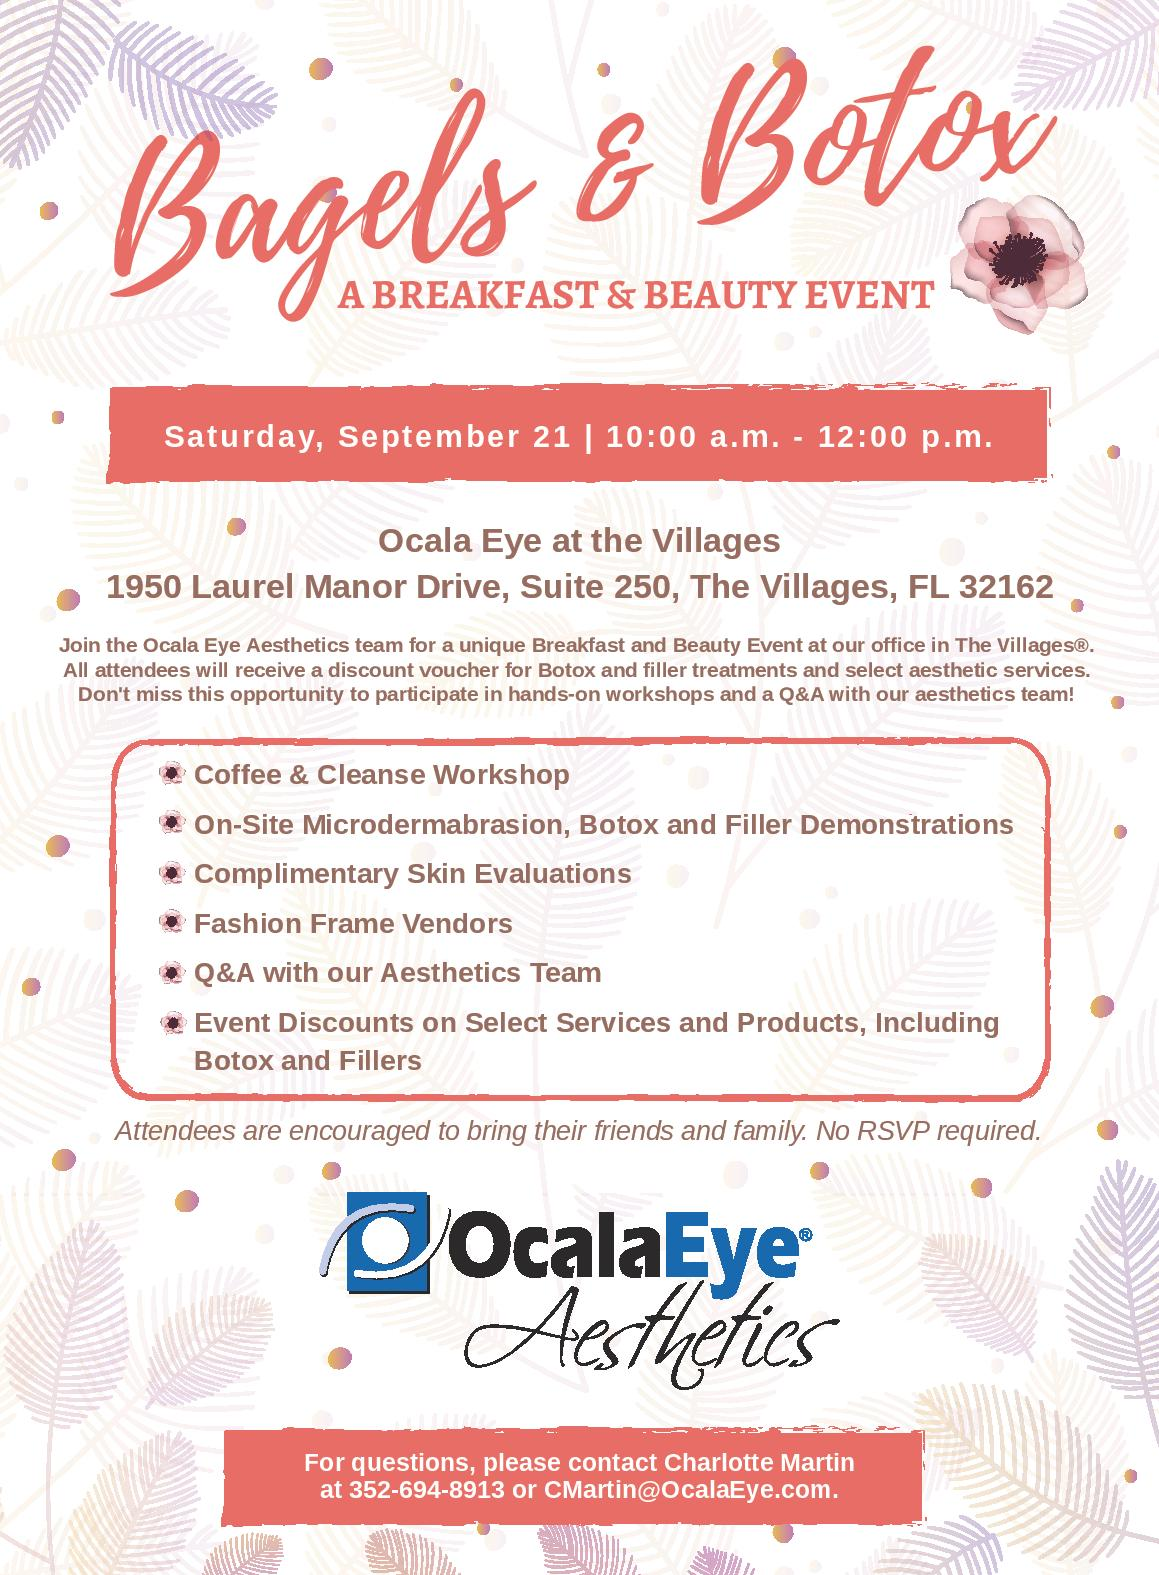 Bagels & Botox Beauty Event_FLYER-page-001